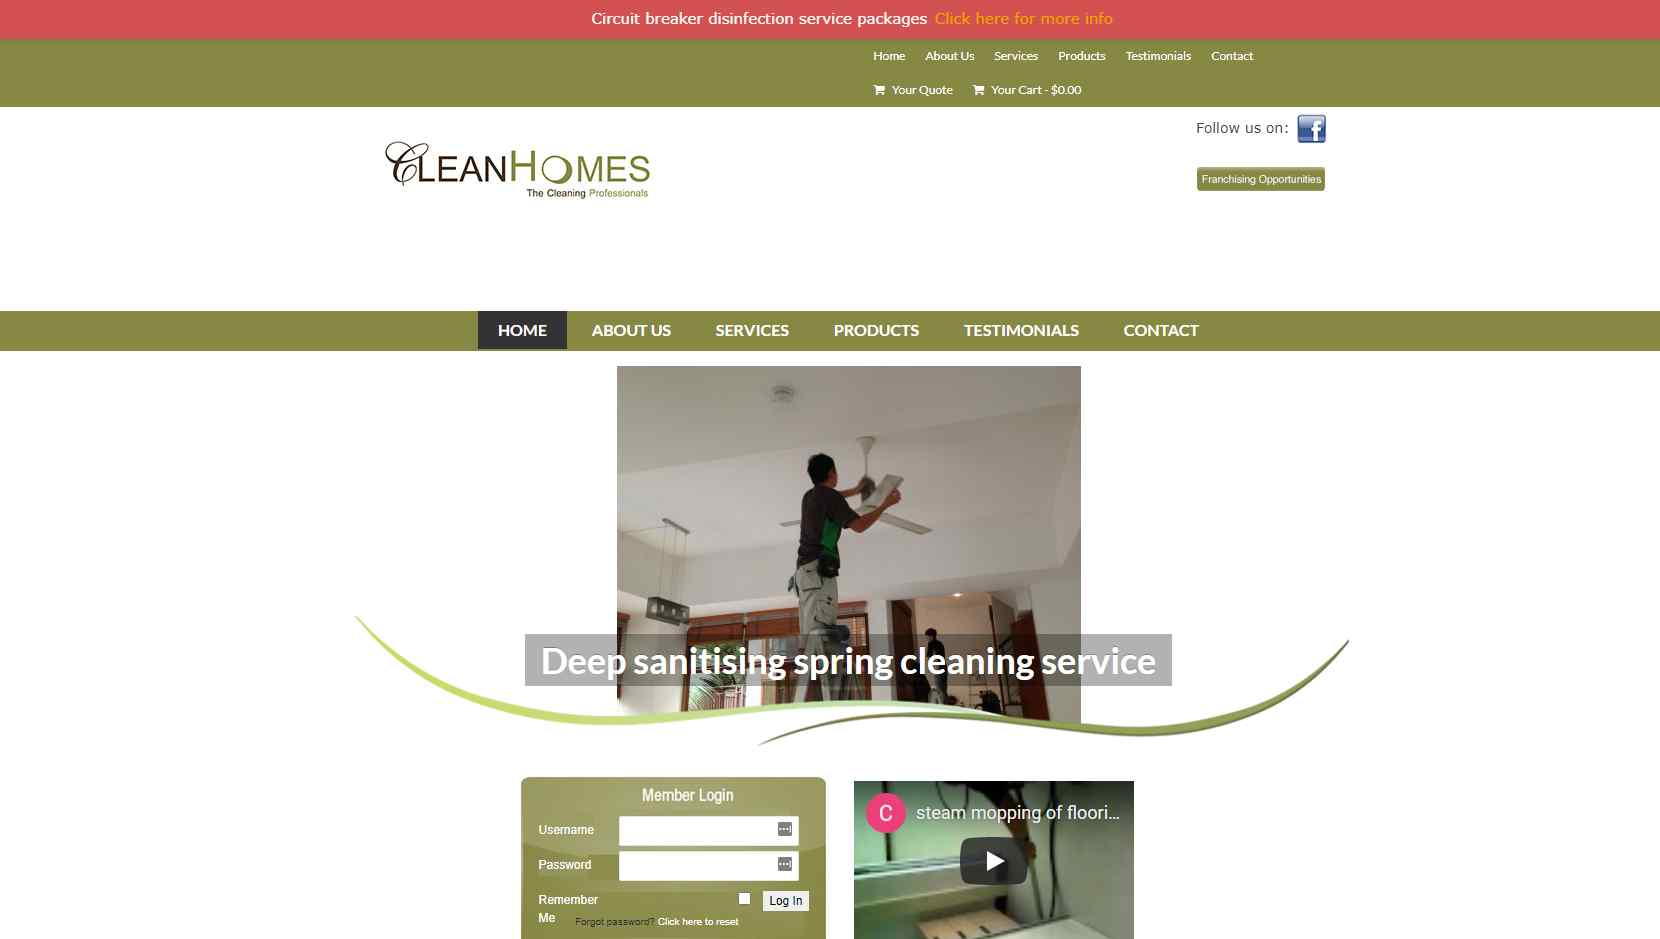 clean homes Top Curtain Cleaning Services in Singapore